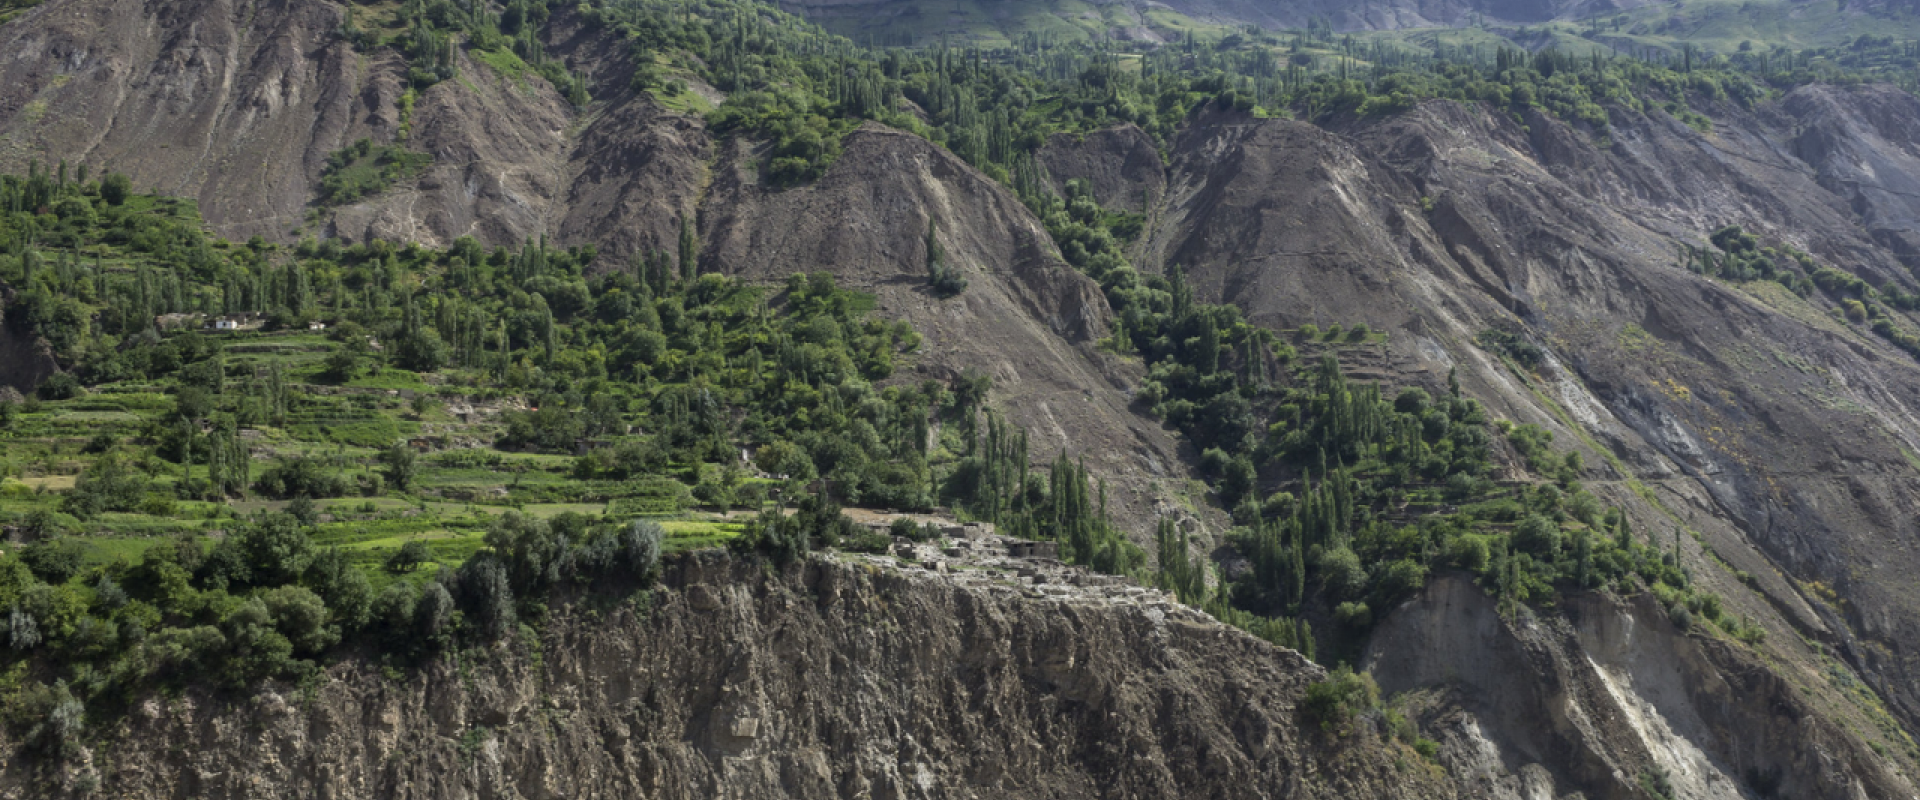 Pakistan ranks among the top ten countries affected by climate-induced disasters in the last two decades.